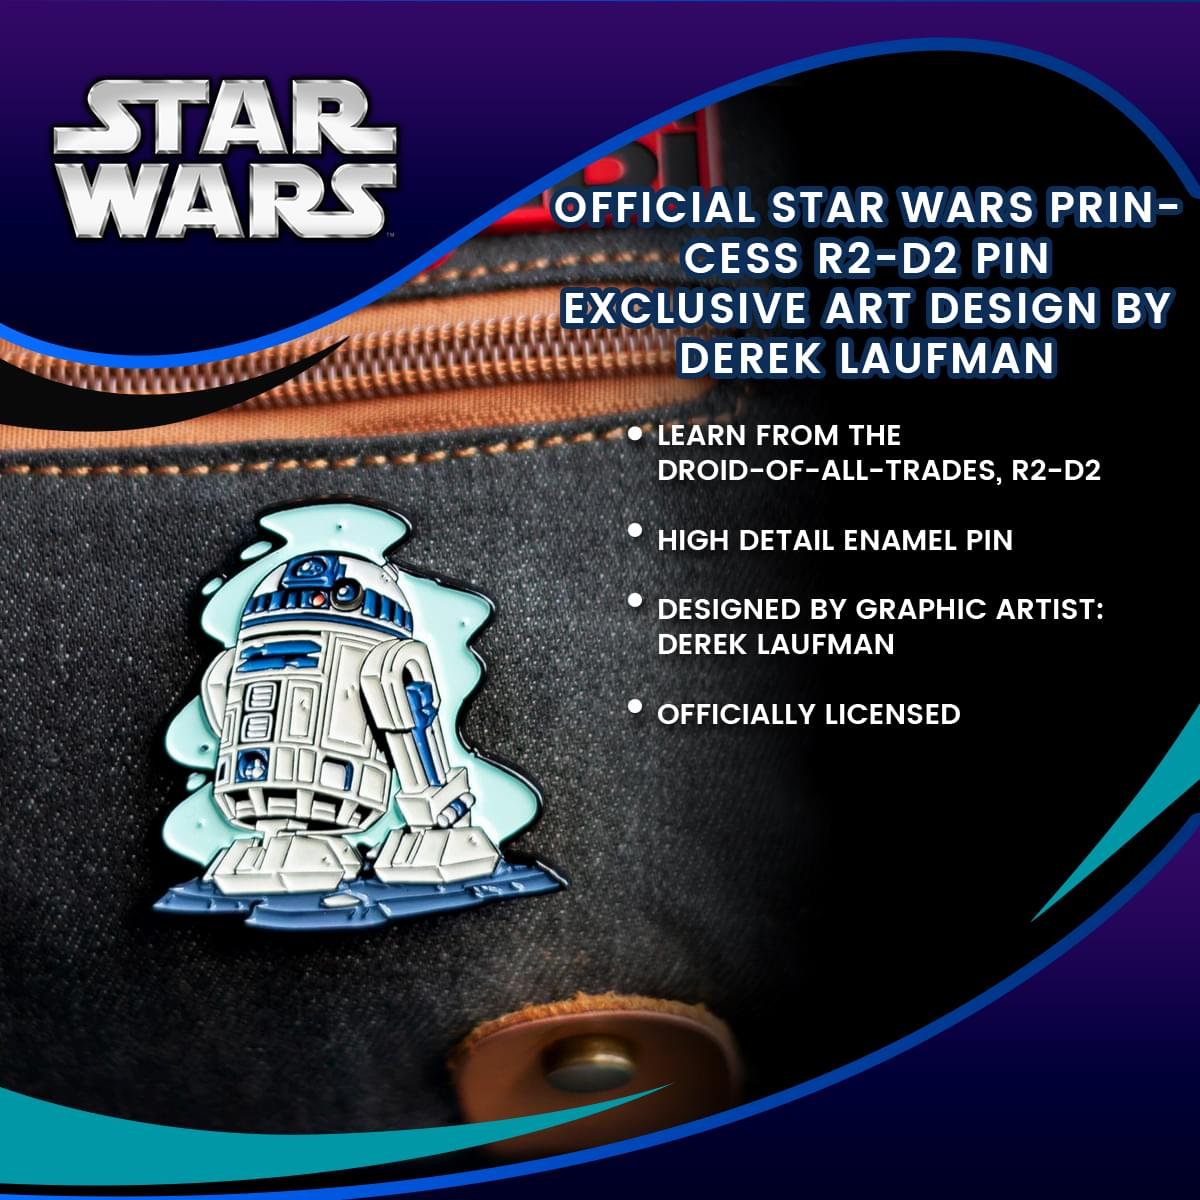 OFFICIAL Star Wars Princess R2-D2 Pin| Exclusive Art Design By Derek Laufman